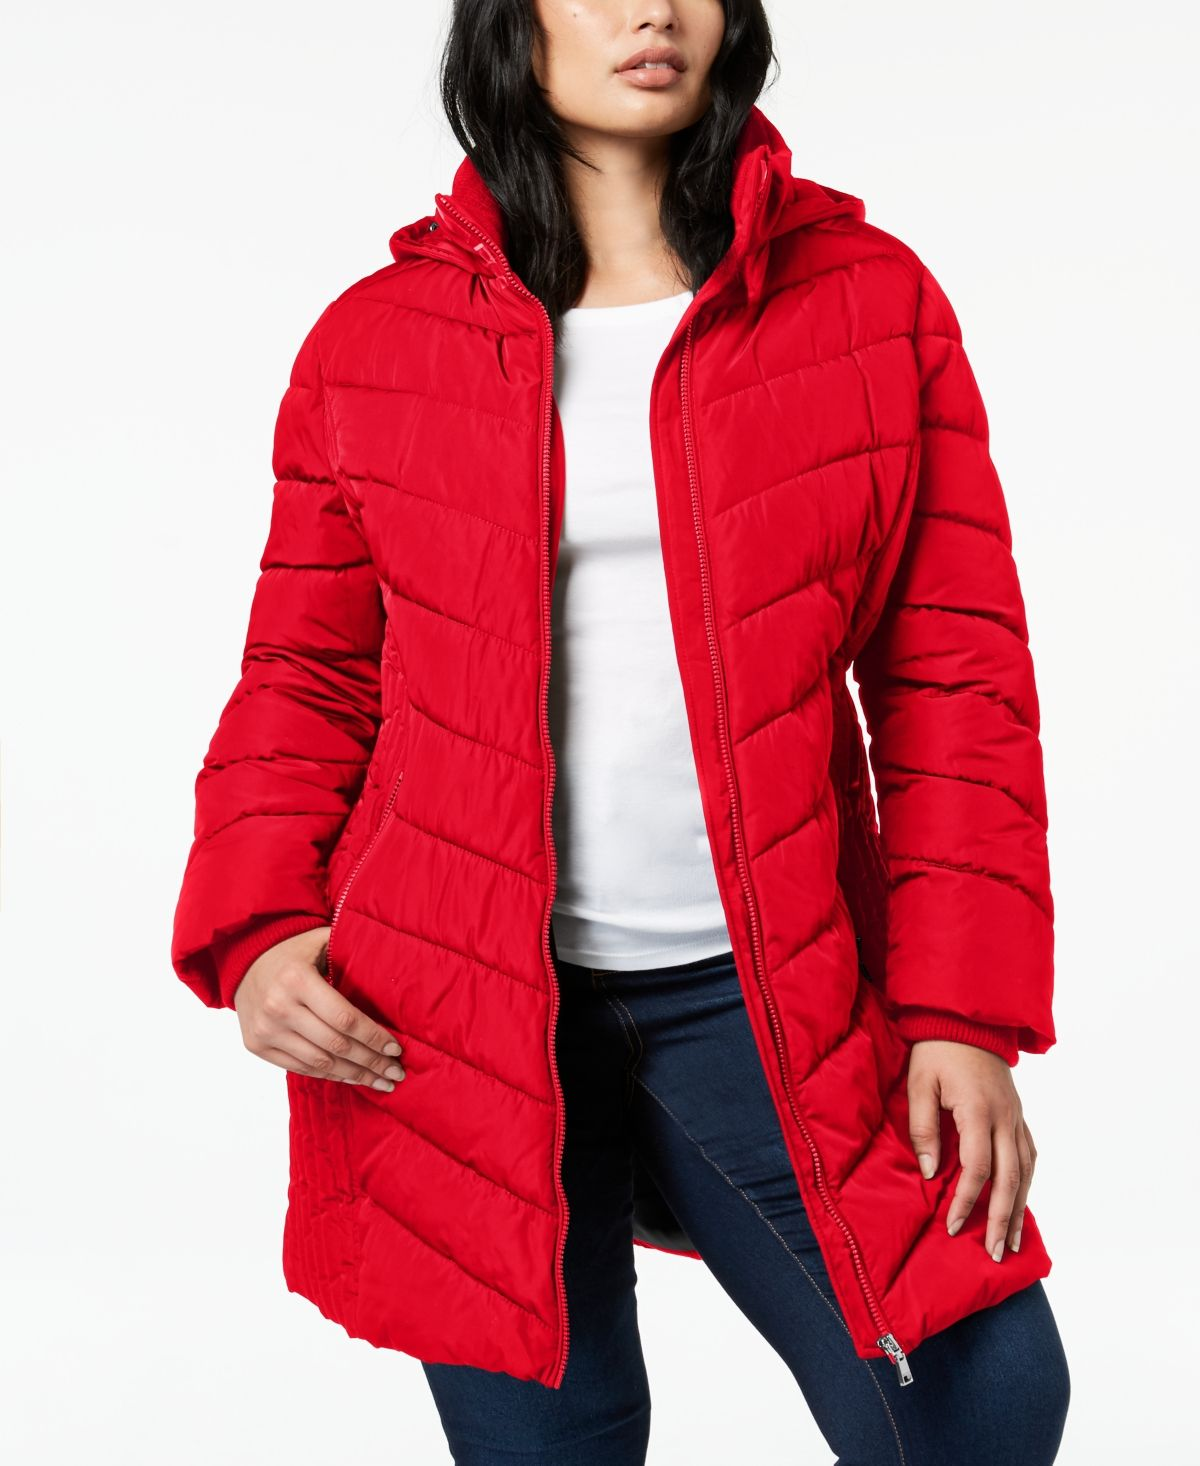 Tommy Hilfiger Plus Size Faux Fur Trim Hooded Water Resistant Puffer Coat Created For Macy S Crimson In 2021 Plus Size Puffer Coat Puffer Coat Big Clothes [ 1466 x 1200 Pixel ]